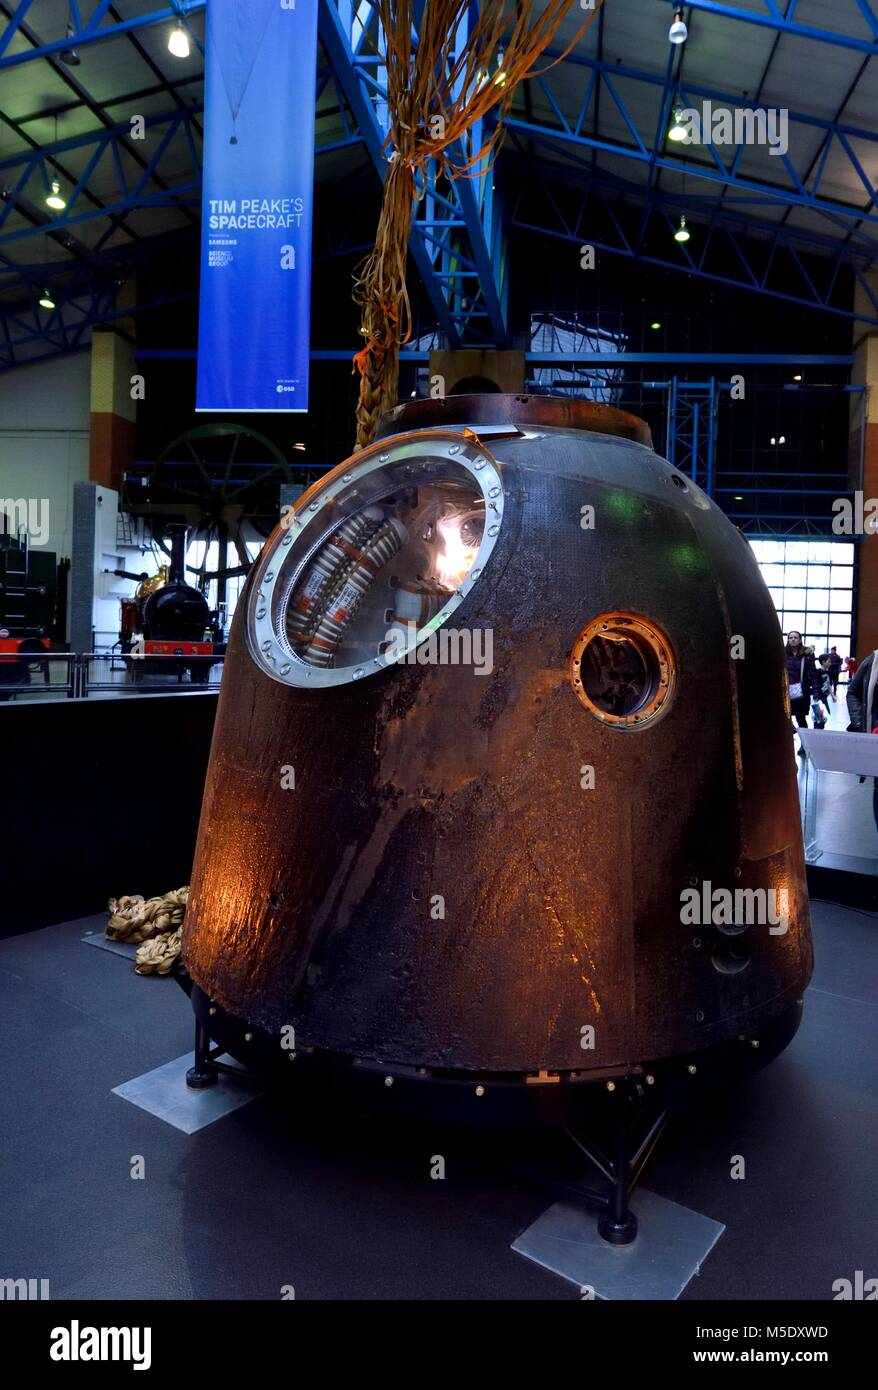 Tim Peake's Spacecraft the Soyuz TMA-19M Decent Module, National Railway Museum in York,North Yorkshire England - Stock Image